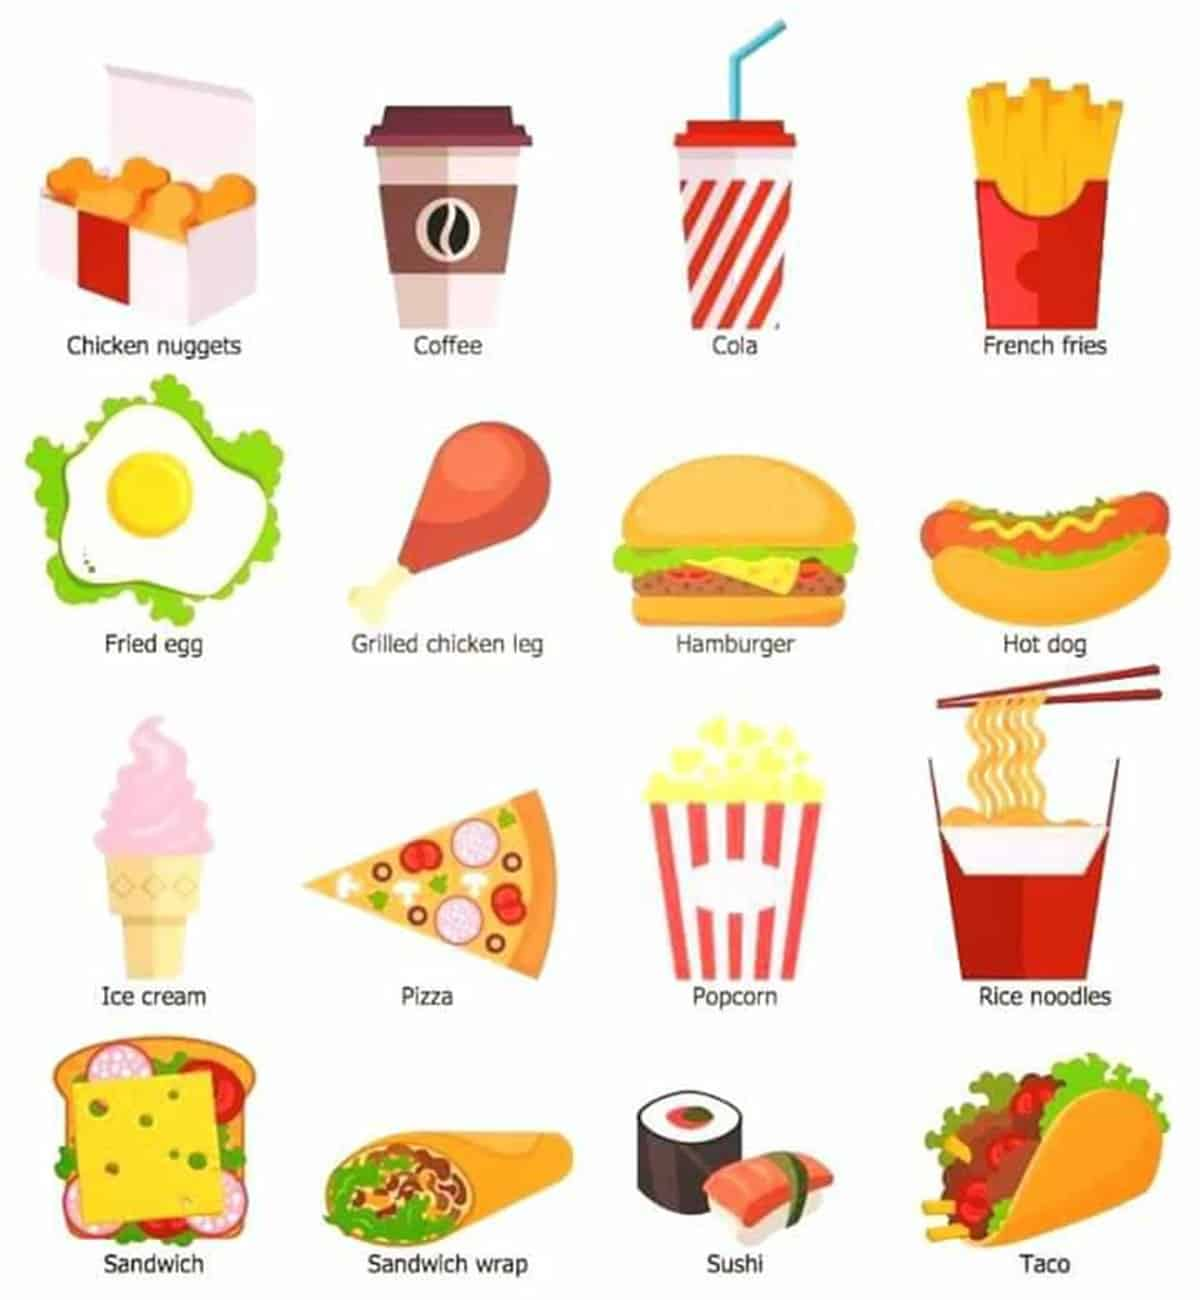 English Vocabulary for Fast Food 14